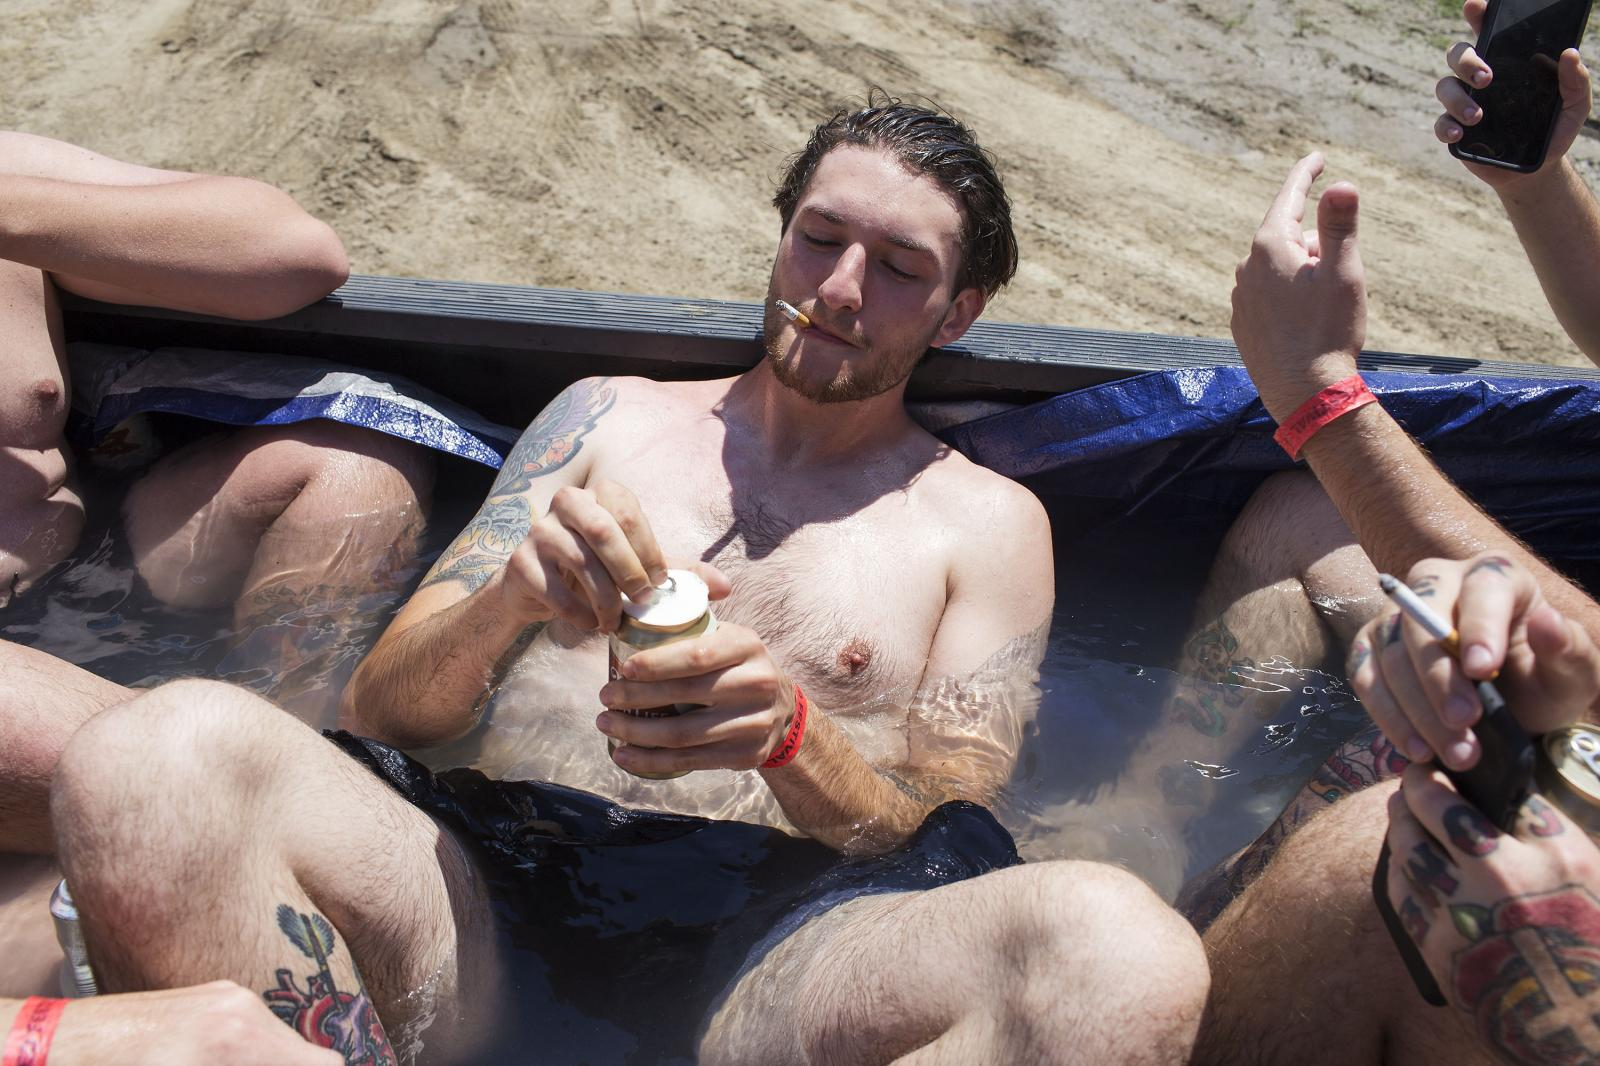 Alic Scoat drinks a beer in a pool made out of a pickup bed during Audiofeed Festival in Urbana, Illinois on Saturday, July 1, 2017. The party was later broken up by security; Audiofeed is an alcohol-free festival. © 2017 KC McGinnis